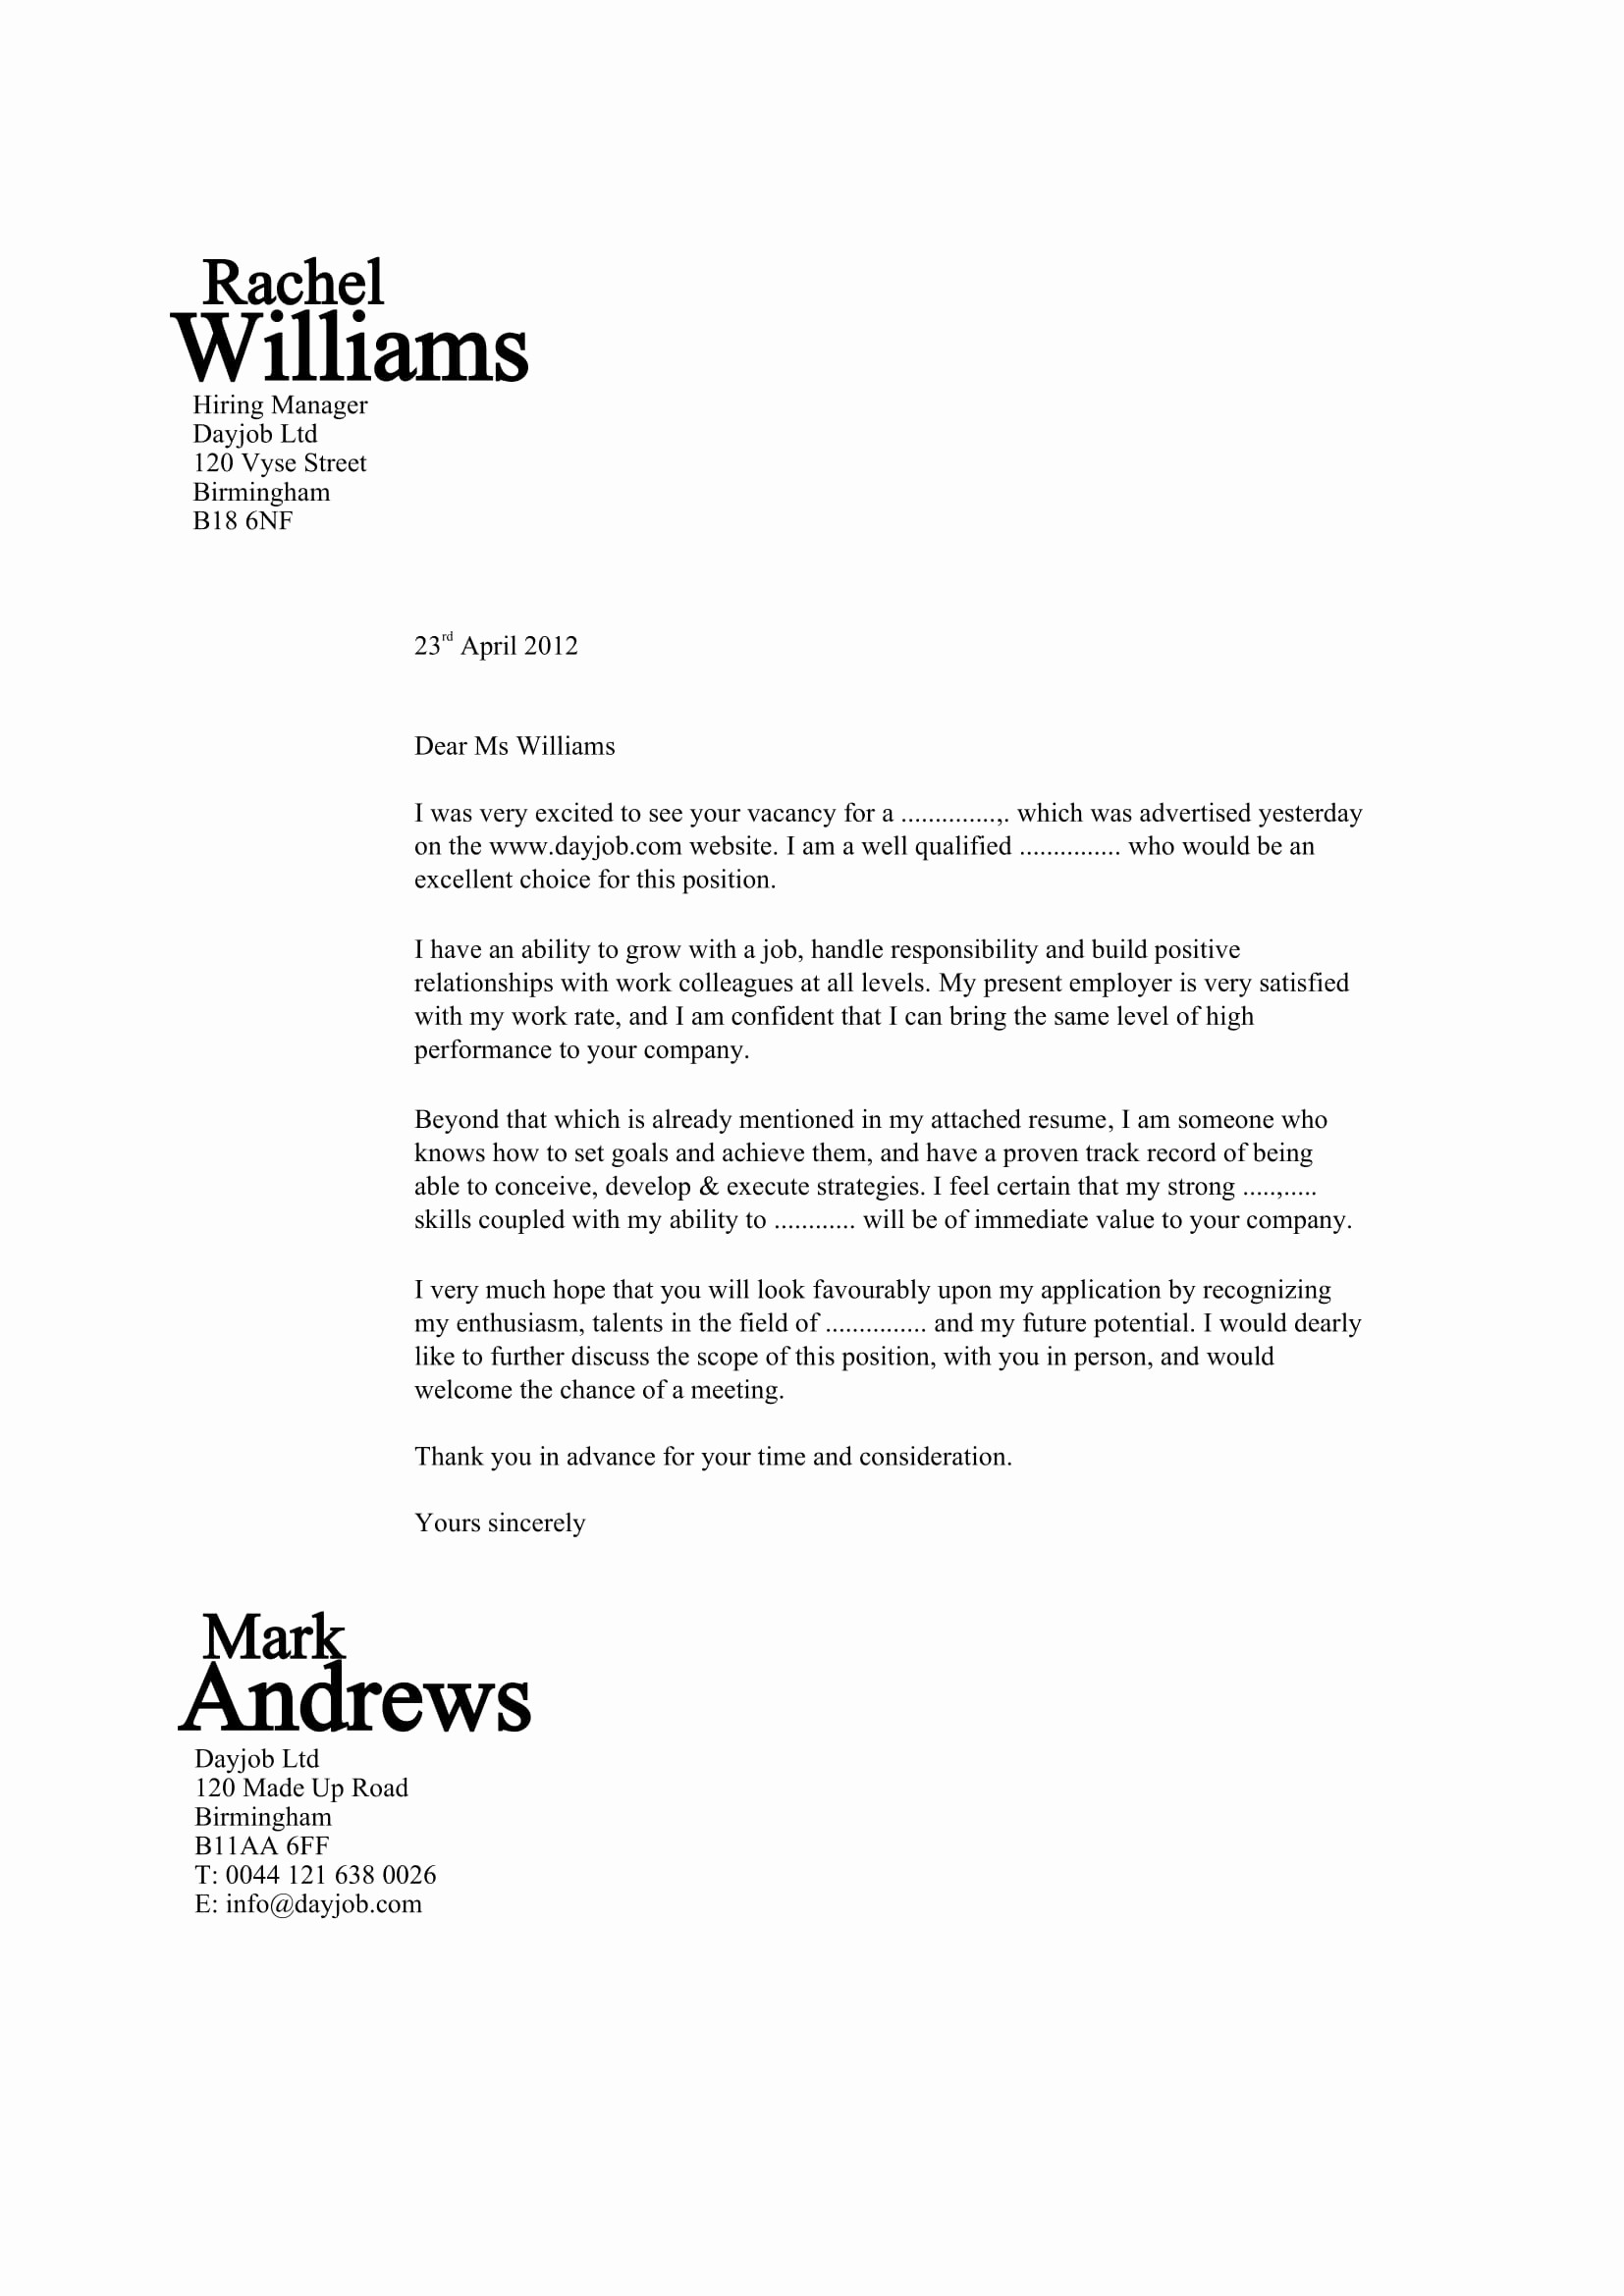 Template for Cover Letter Free Unique 32 Best Sample Cover Letter Examples for Job Applicants